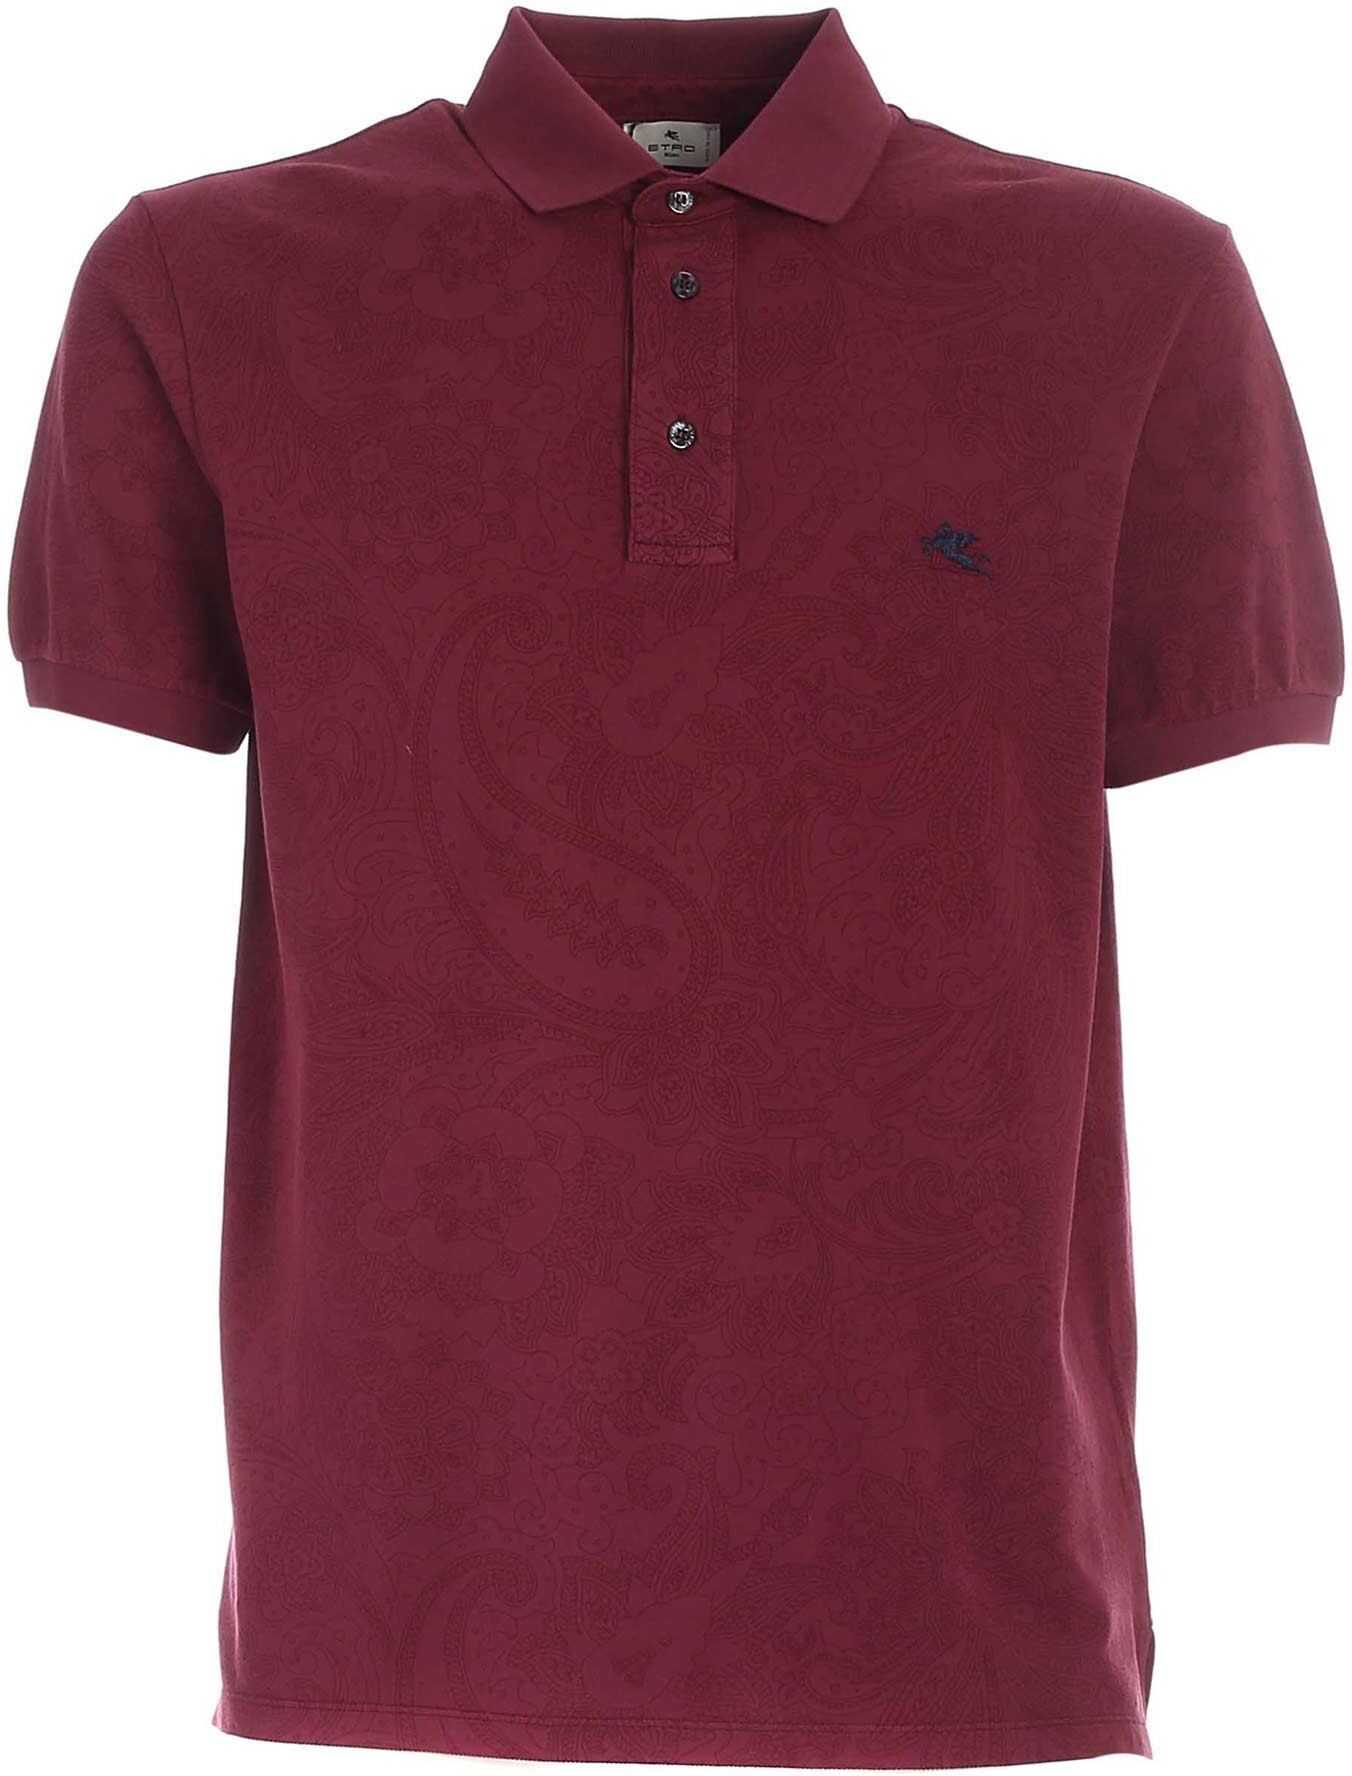 ETRO Floral Pattern Polo Shirt In Burgundy Color Red imagine